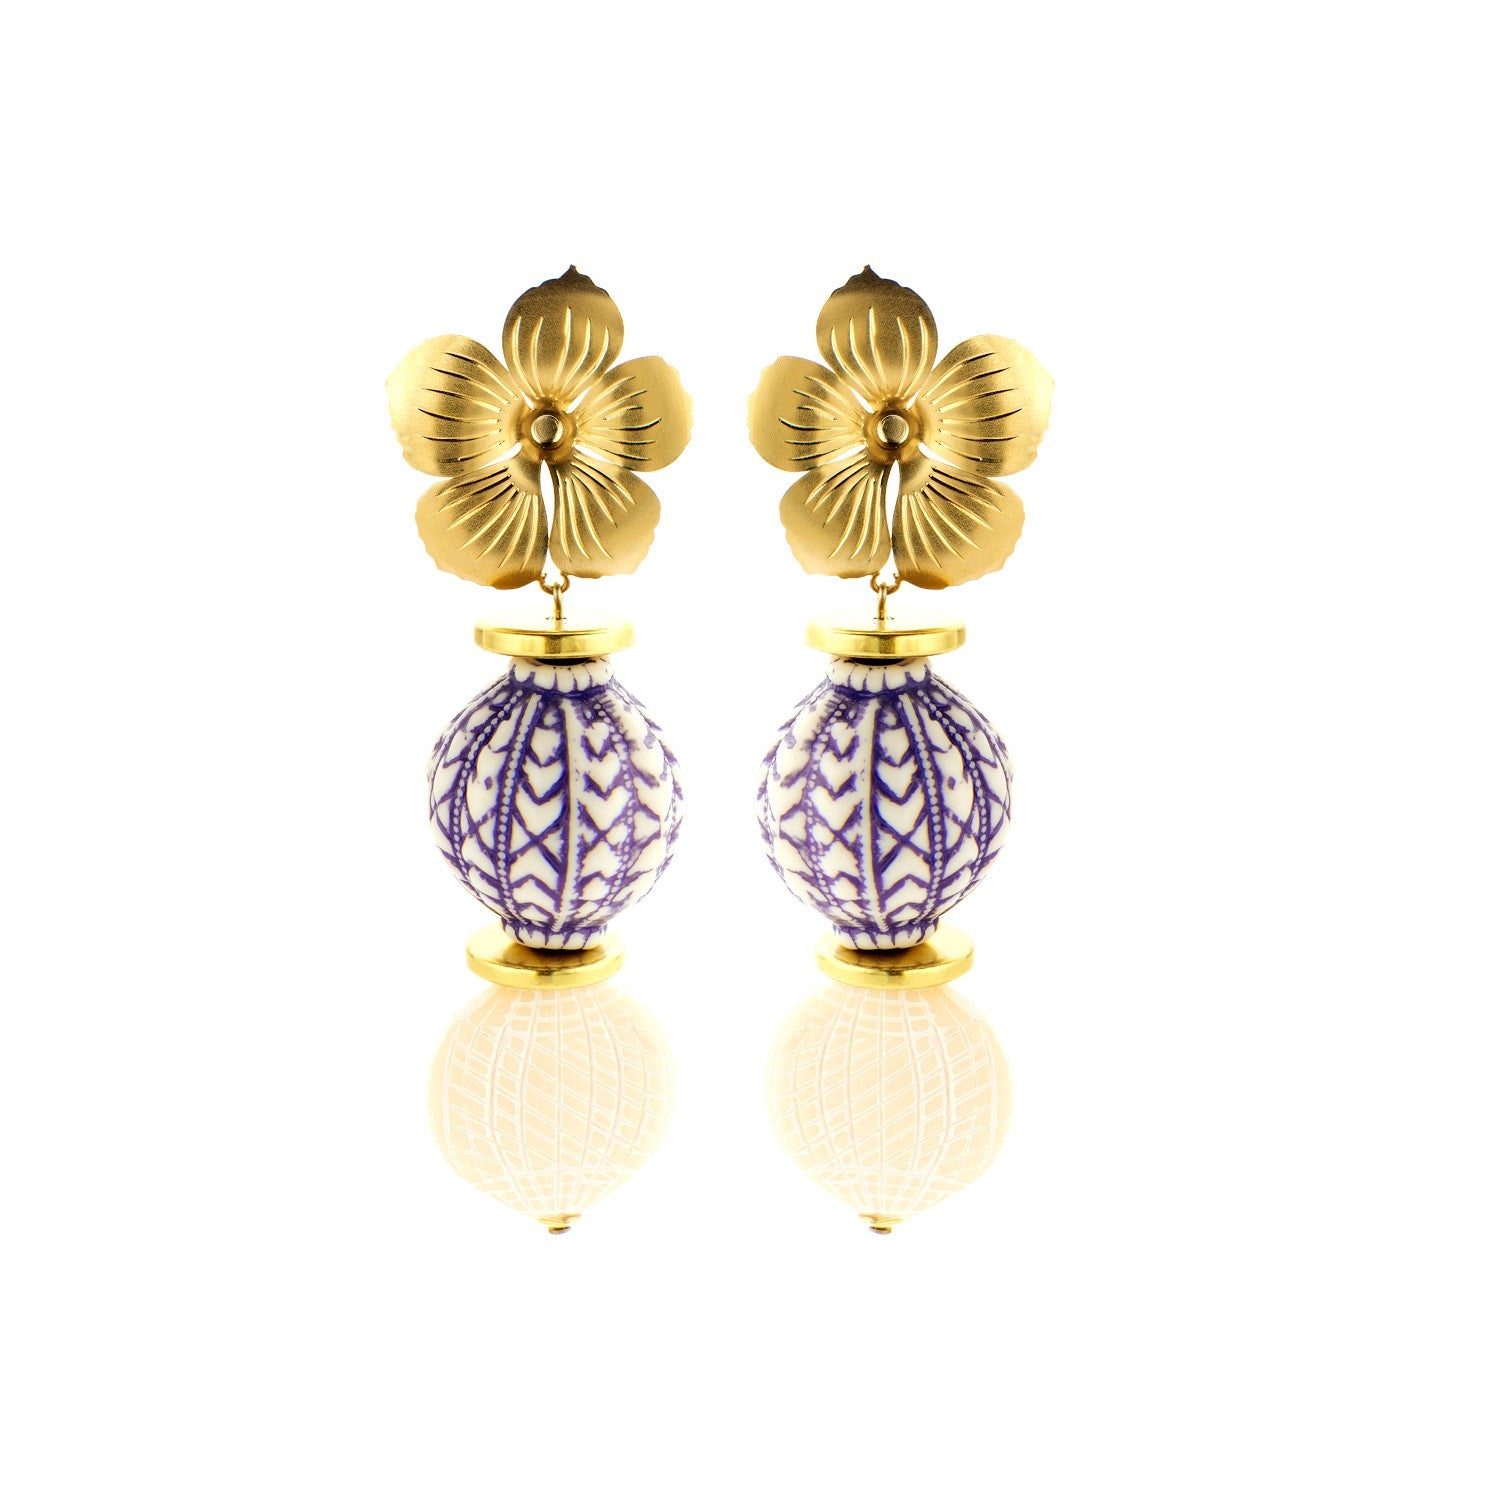 Floral greek blue earrings - Souvenirs de Pomme